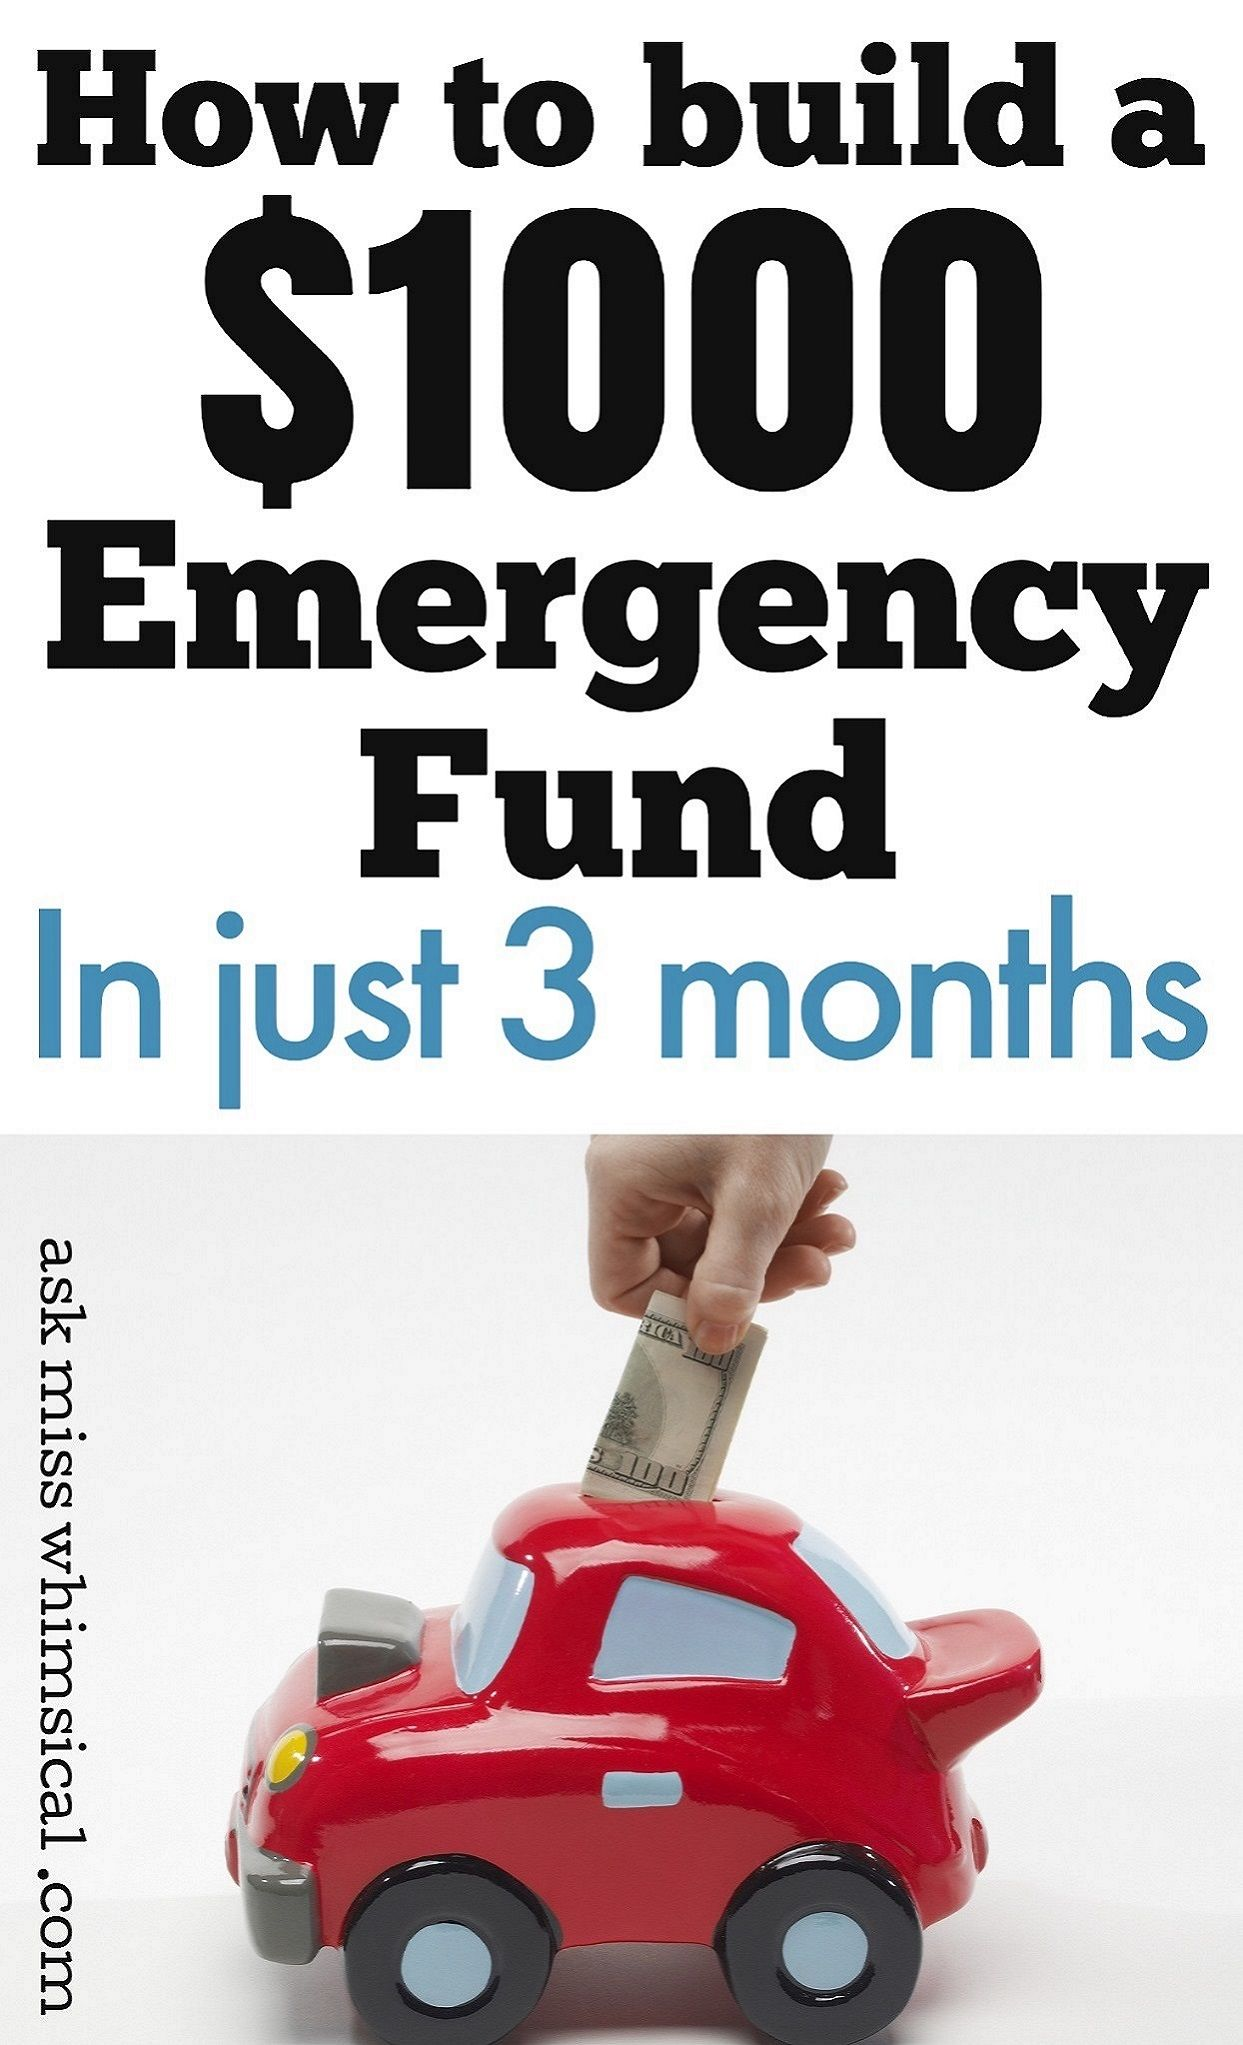 How to build an emergency fast savings plan for your